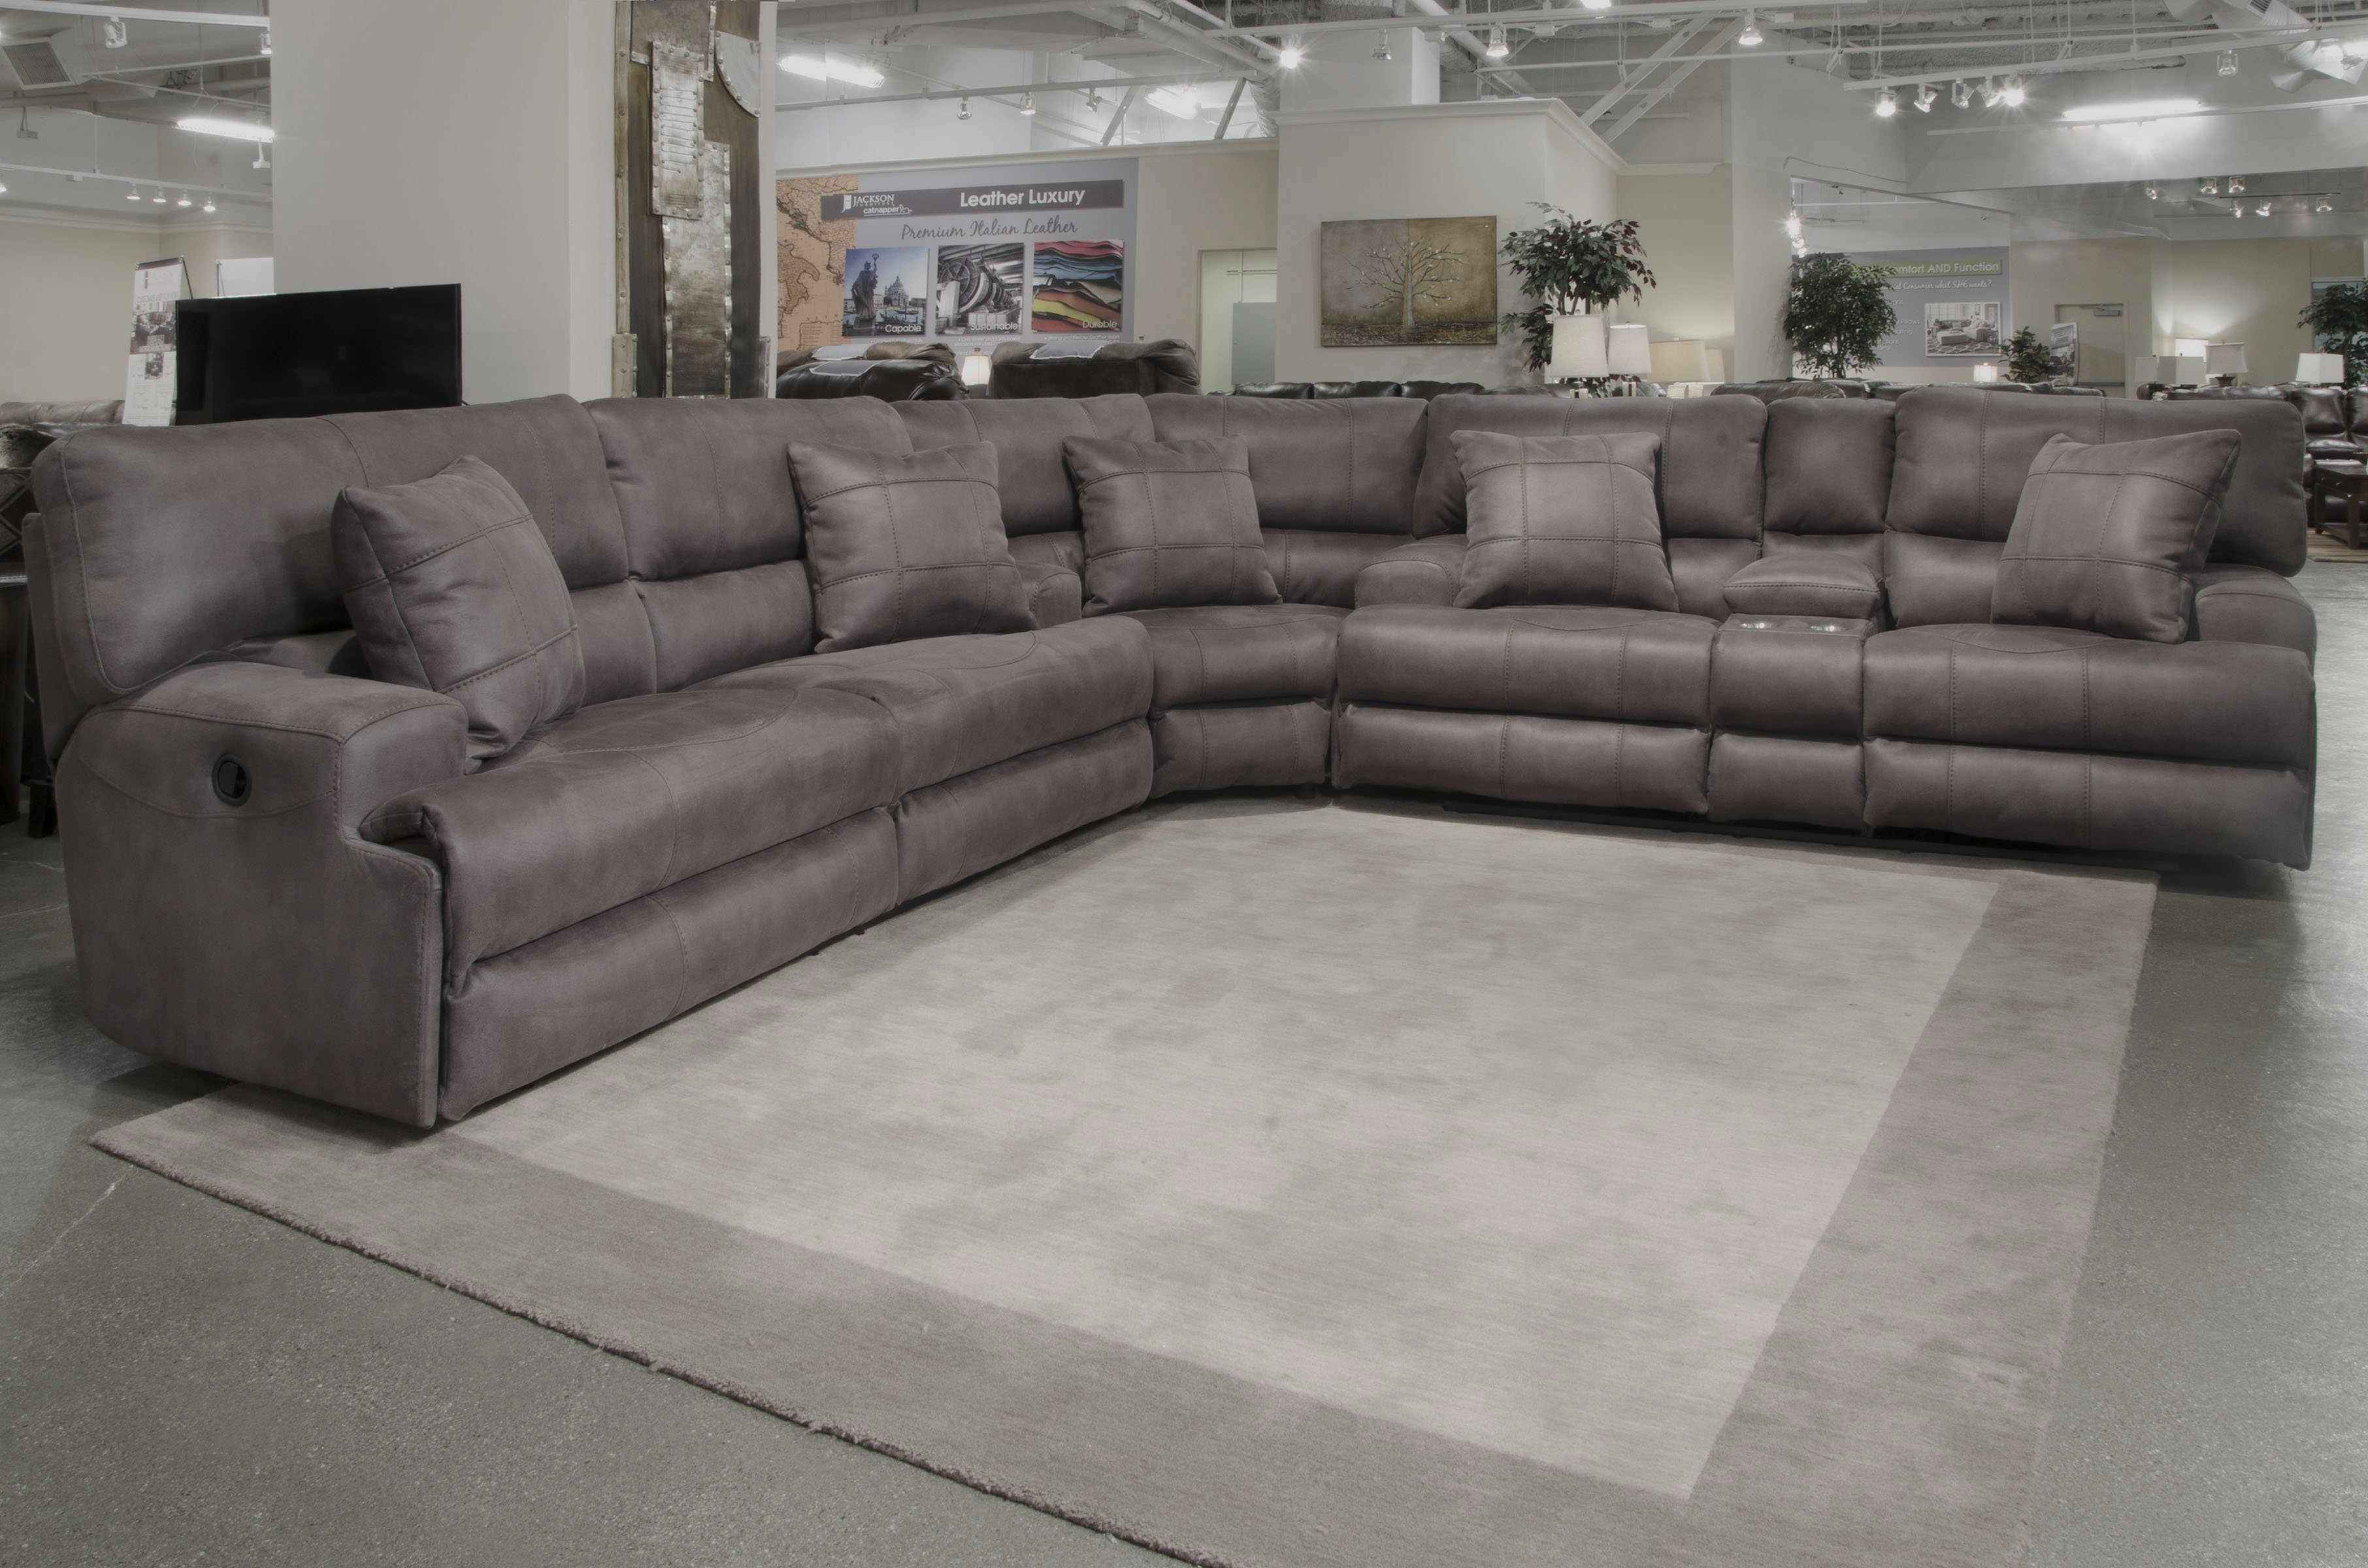 Catnapper Monaco Reclining Sectional | Wayfair Intended For Jackson 6 Piece Power Reclining Sectionals (Image 9 of 25)